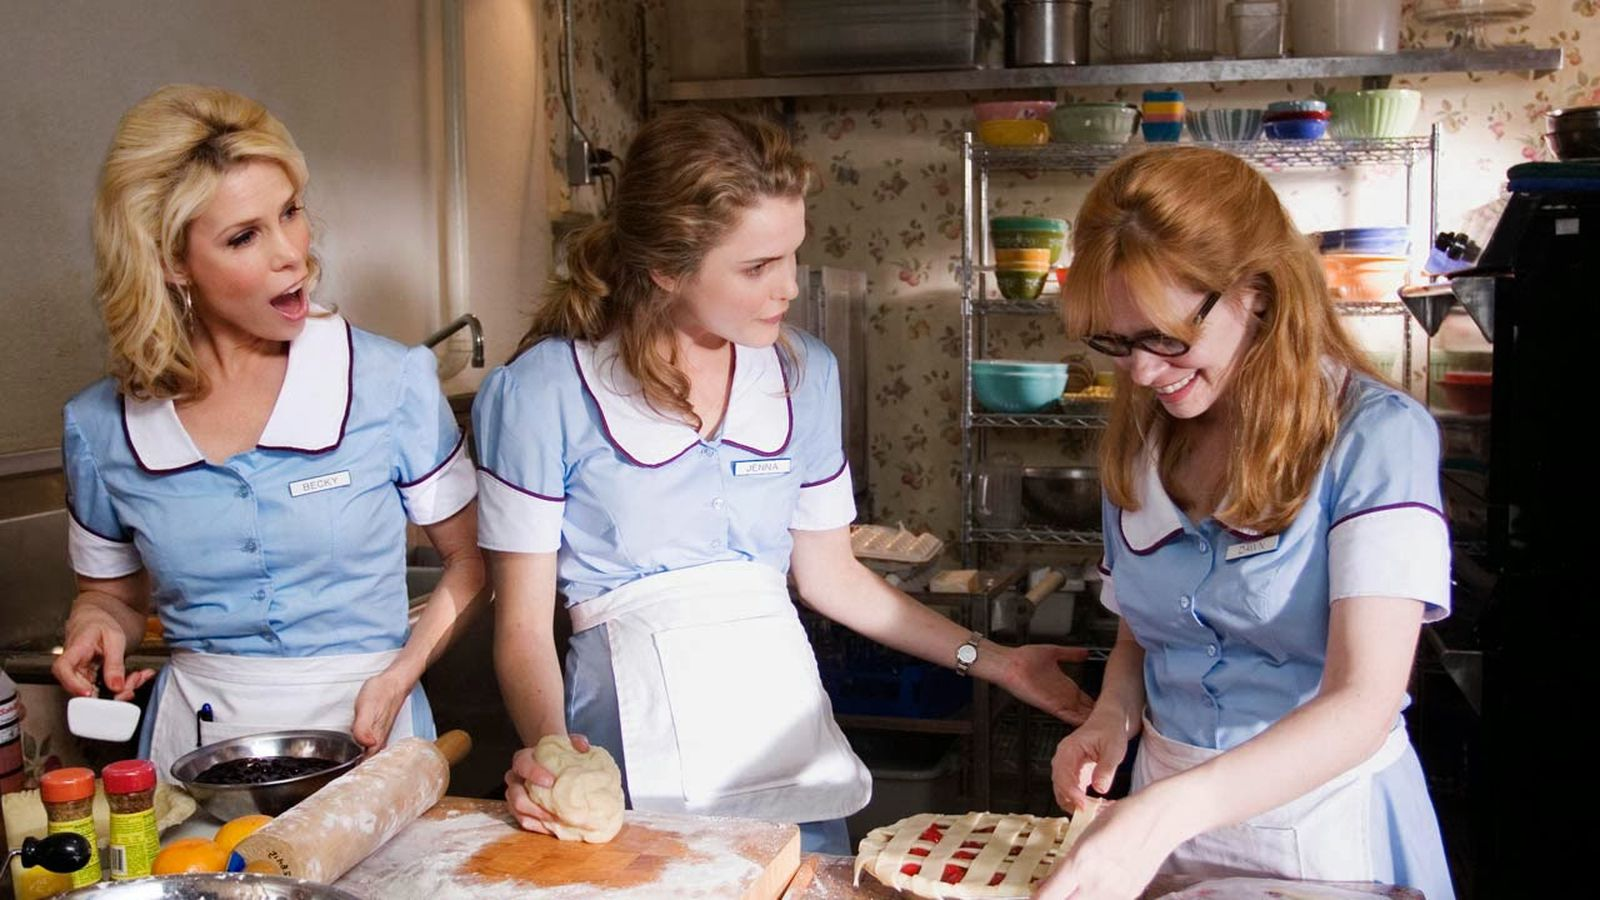 How Diner Waitress Uniforms Have Evolved From Scandalous Bloomers To Gingham Dresses